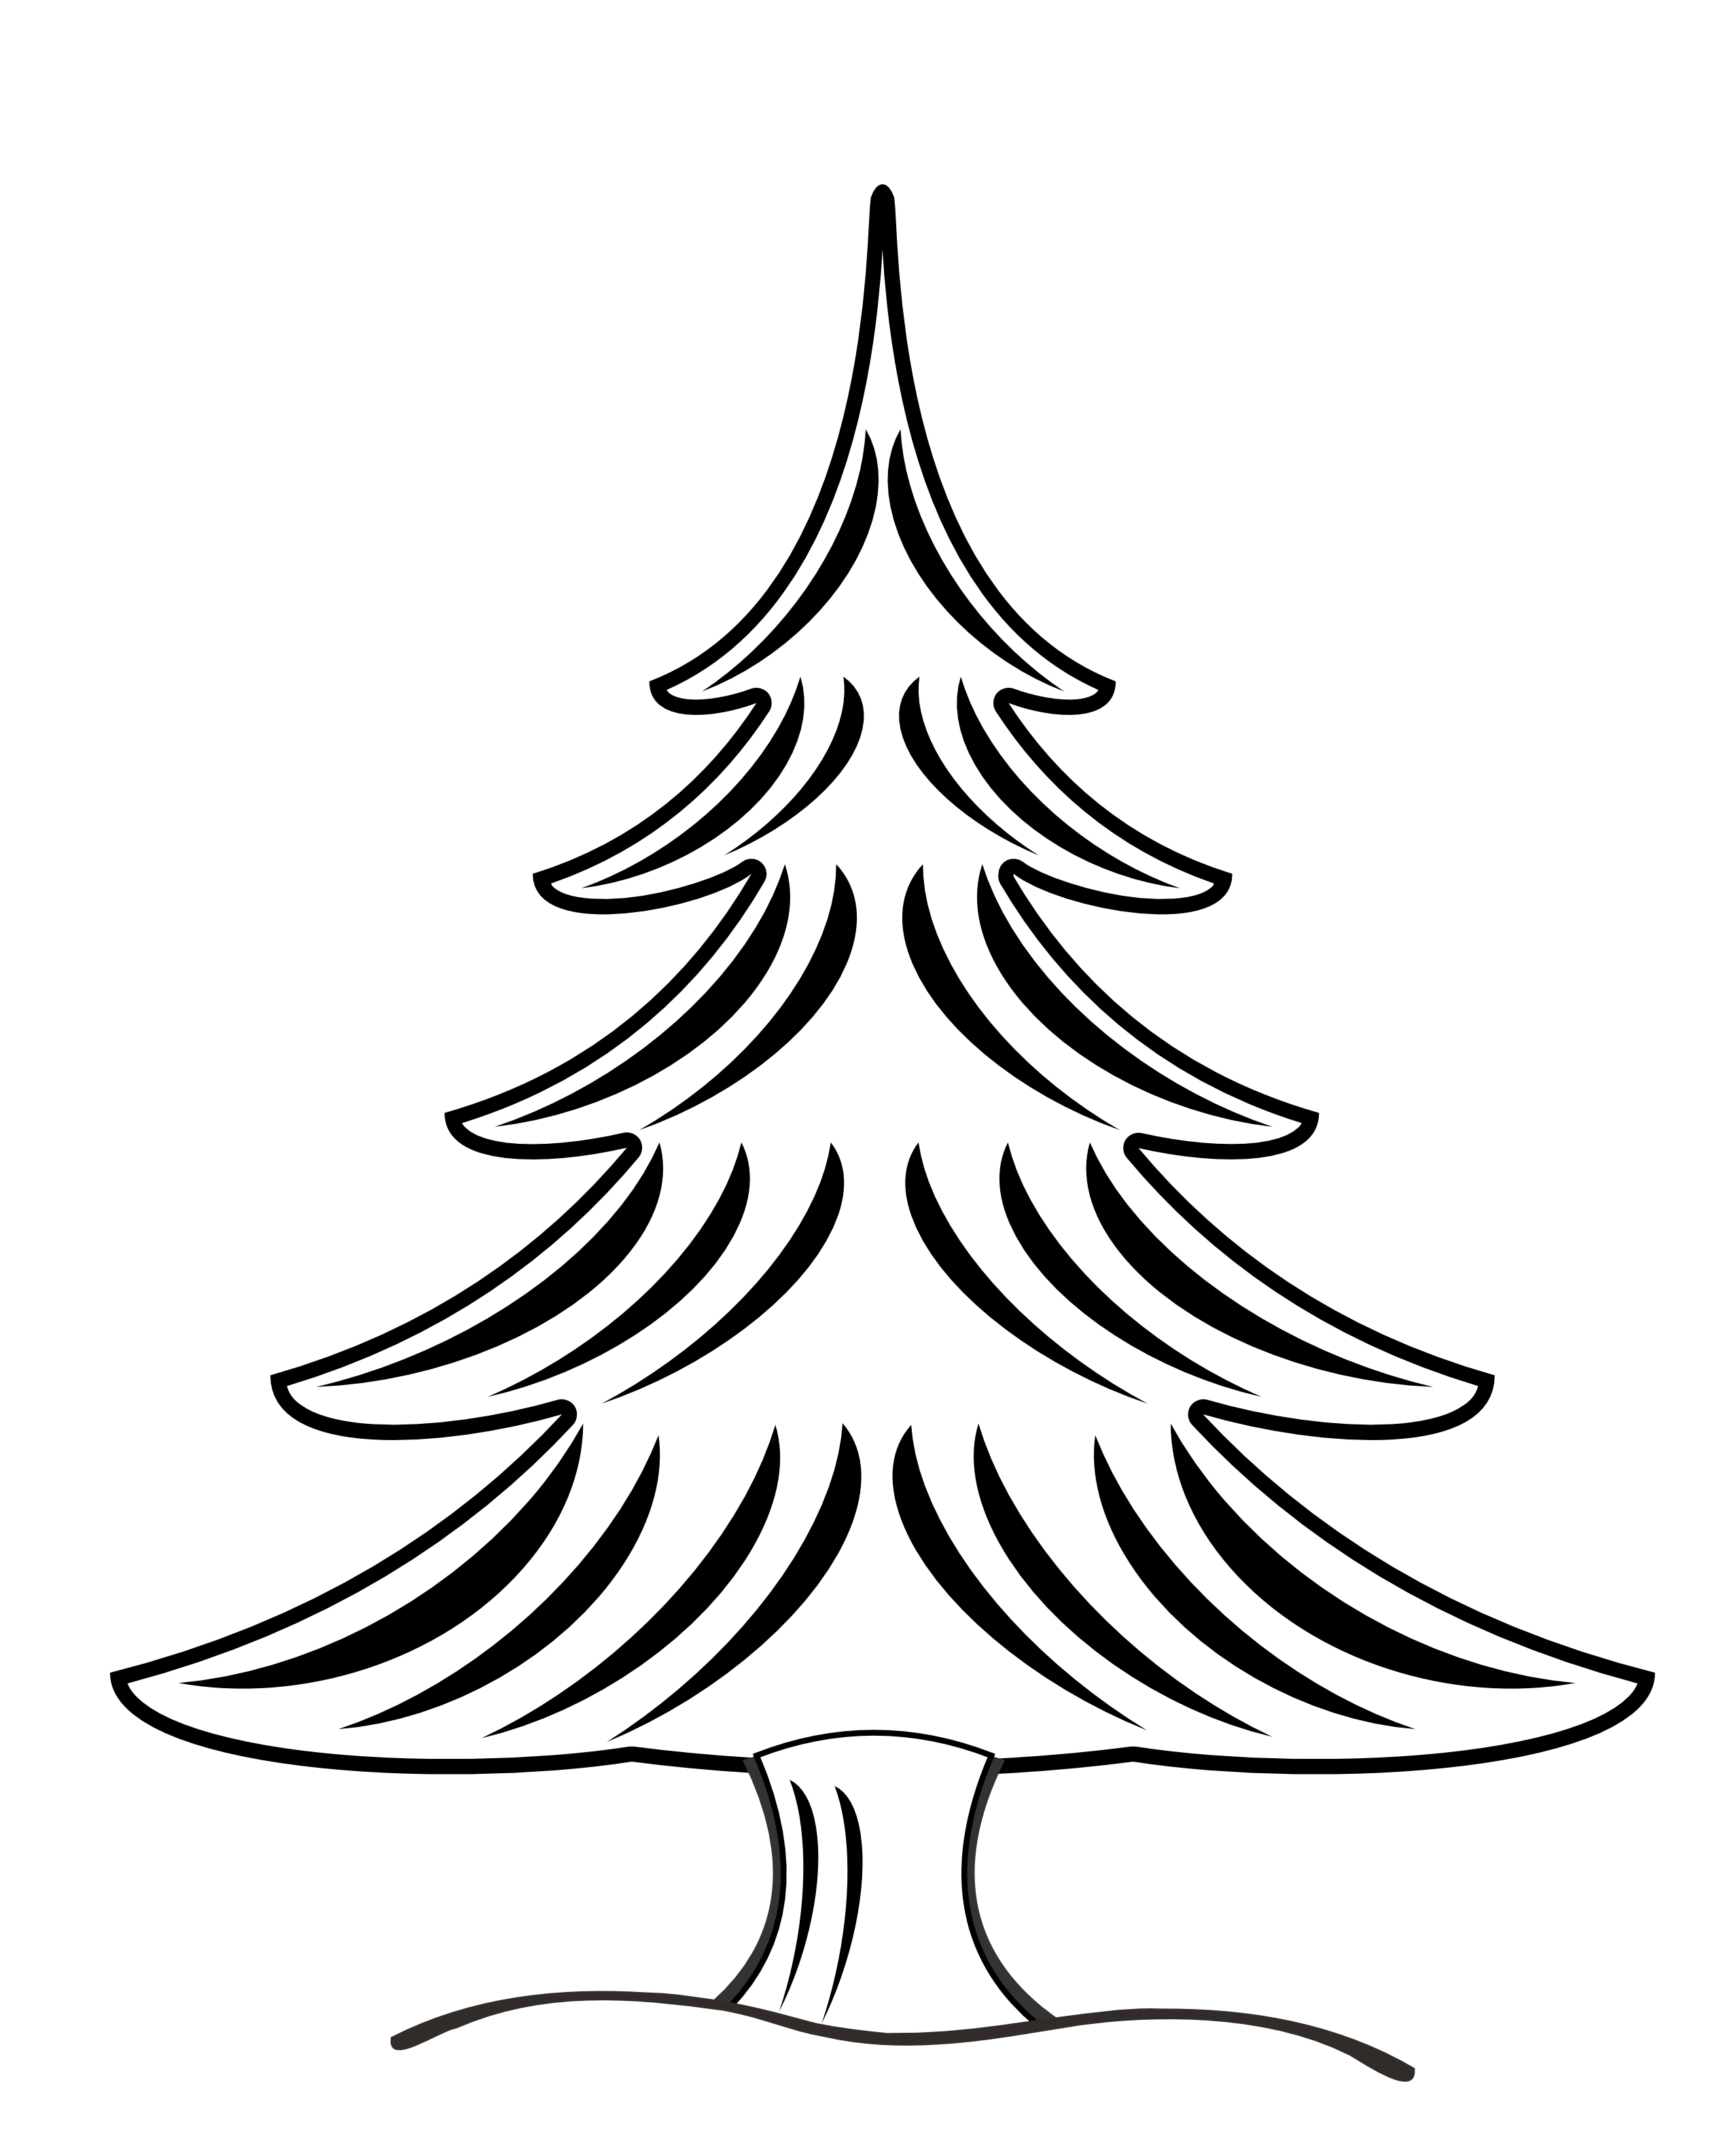 svg royalty free library Clipart trees black and white. Christmas tree panda free